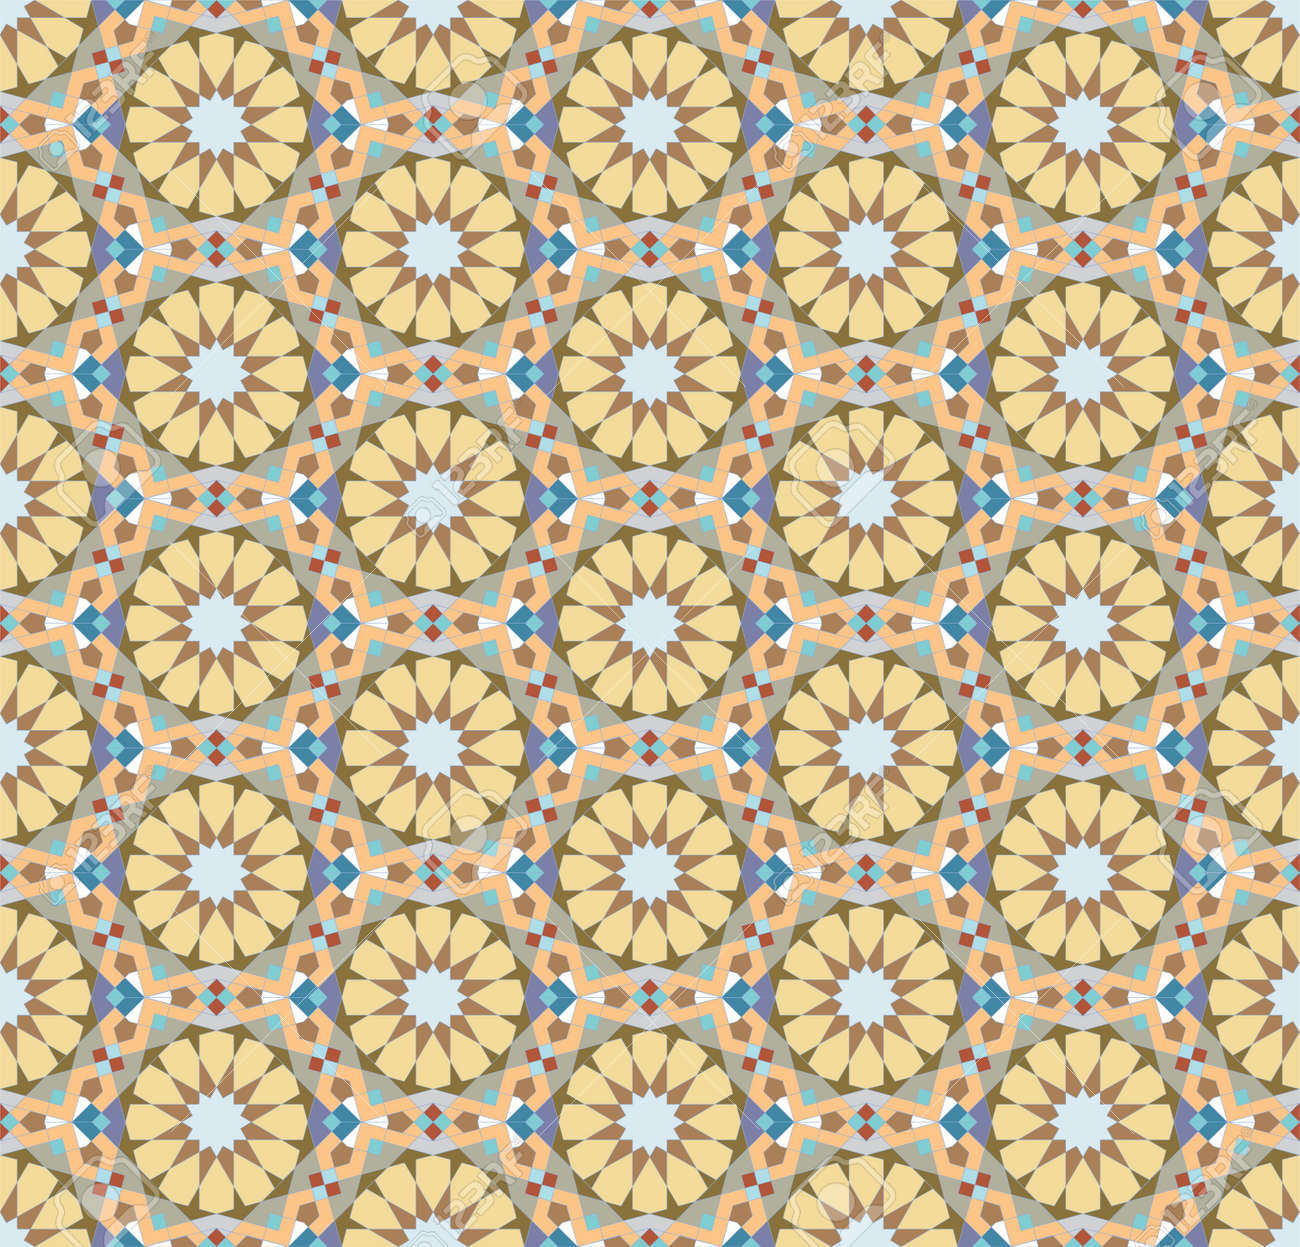 Colorful Floral Patterns Seamlessly Tiling Seamless Pattern